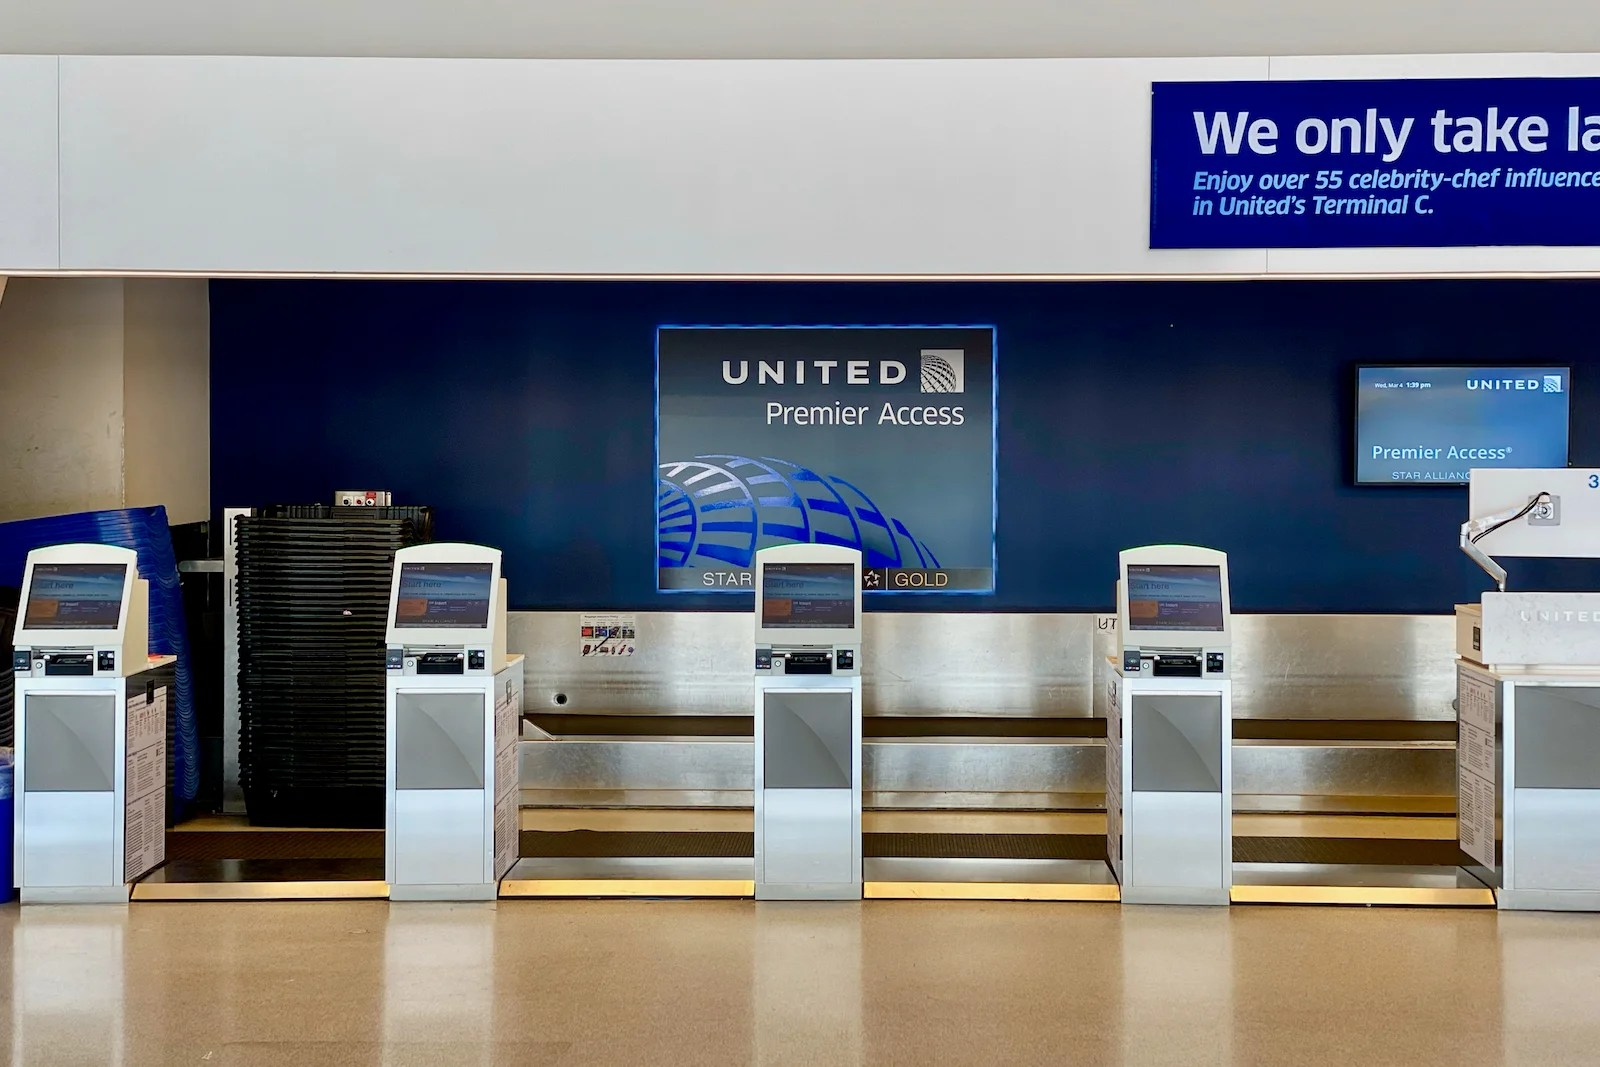 A complete guide to United Airlines' baggage fees and policy - The Points Guy